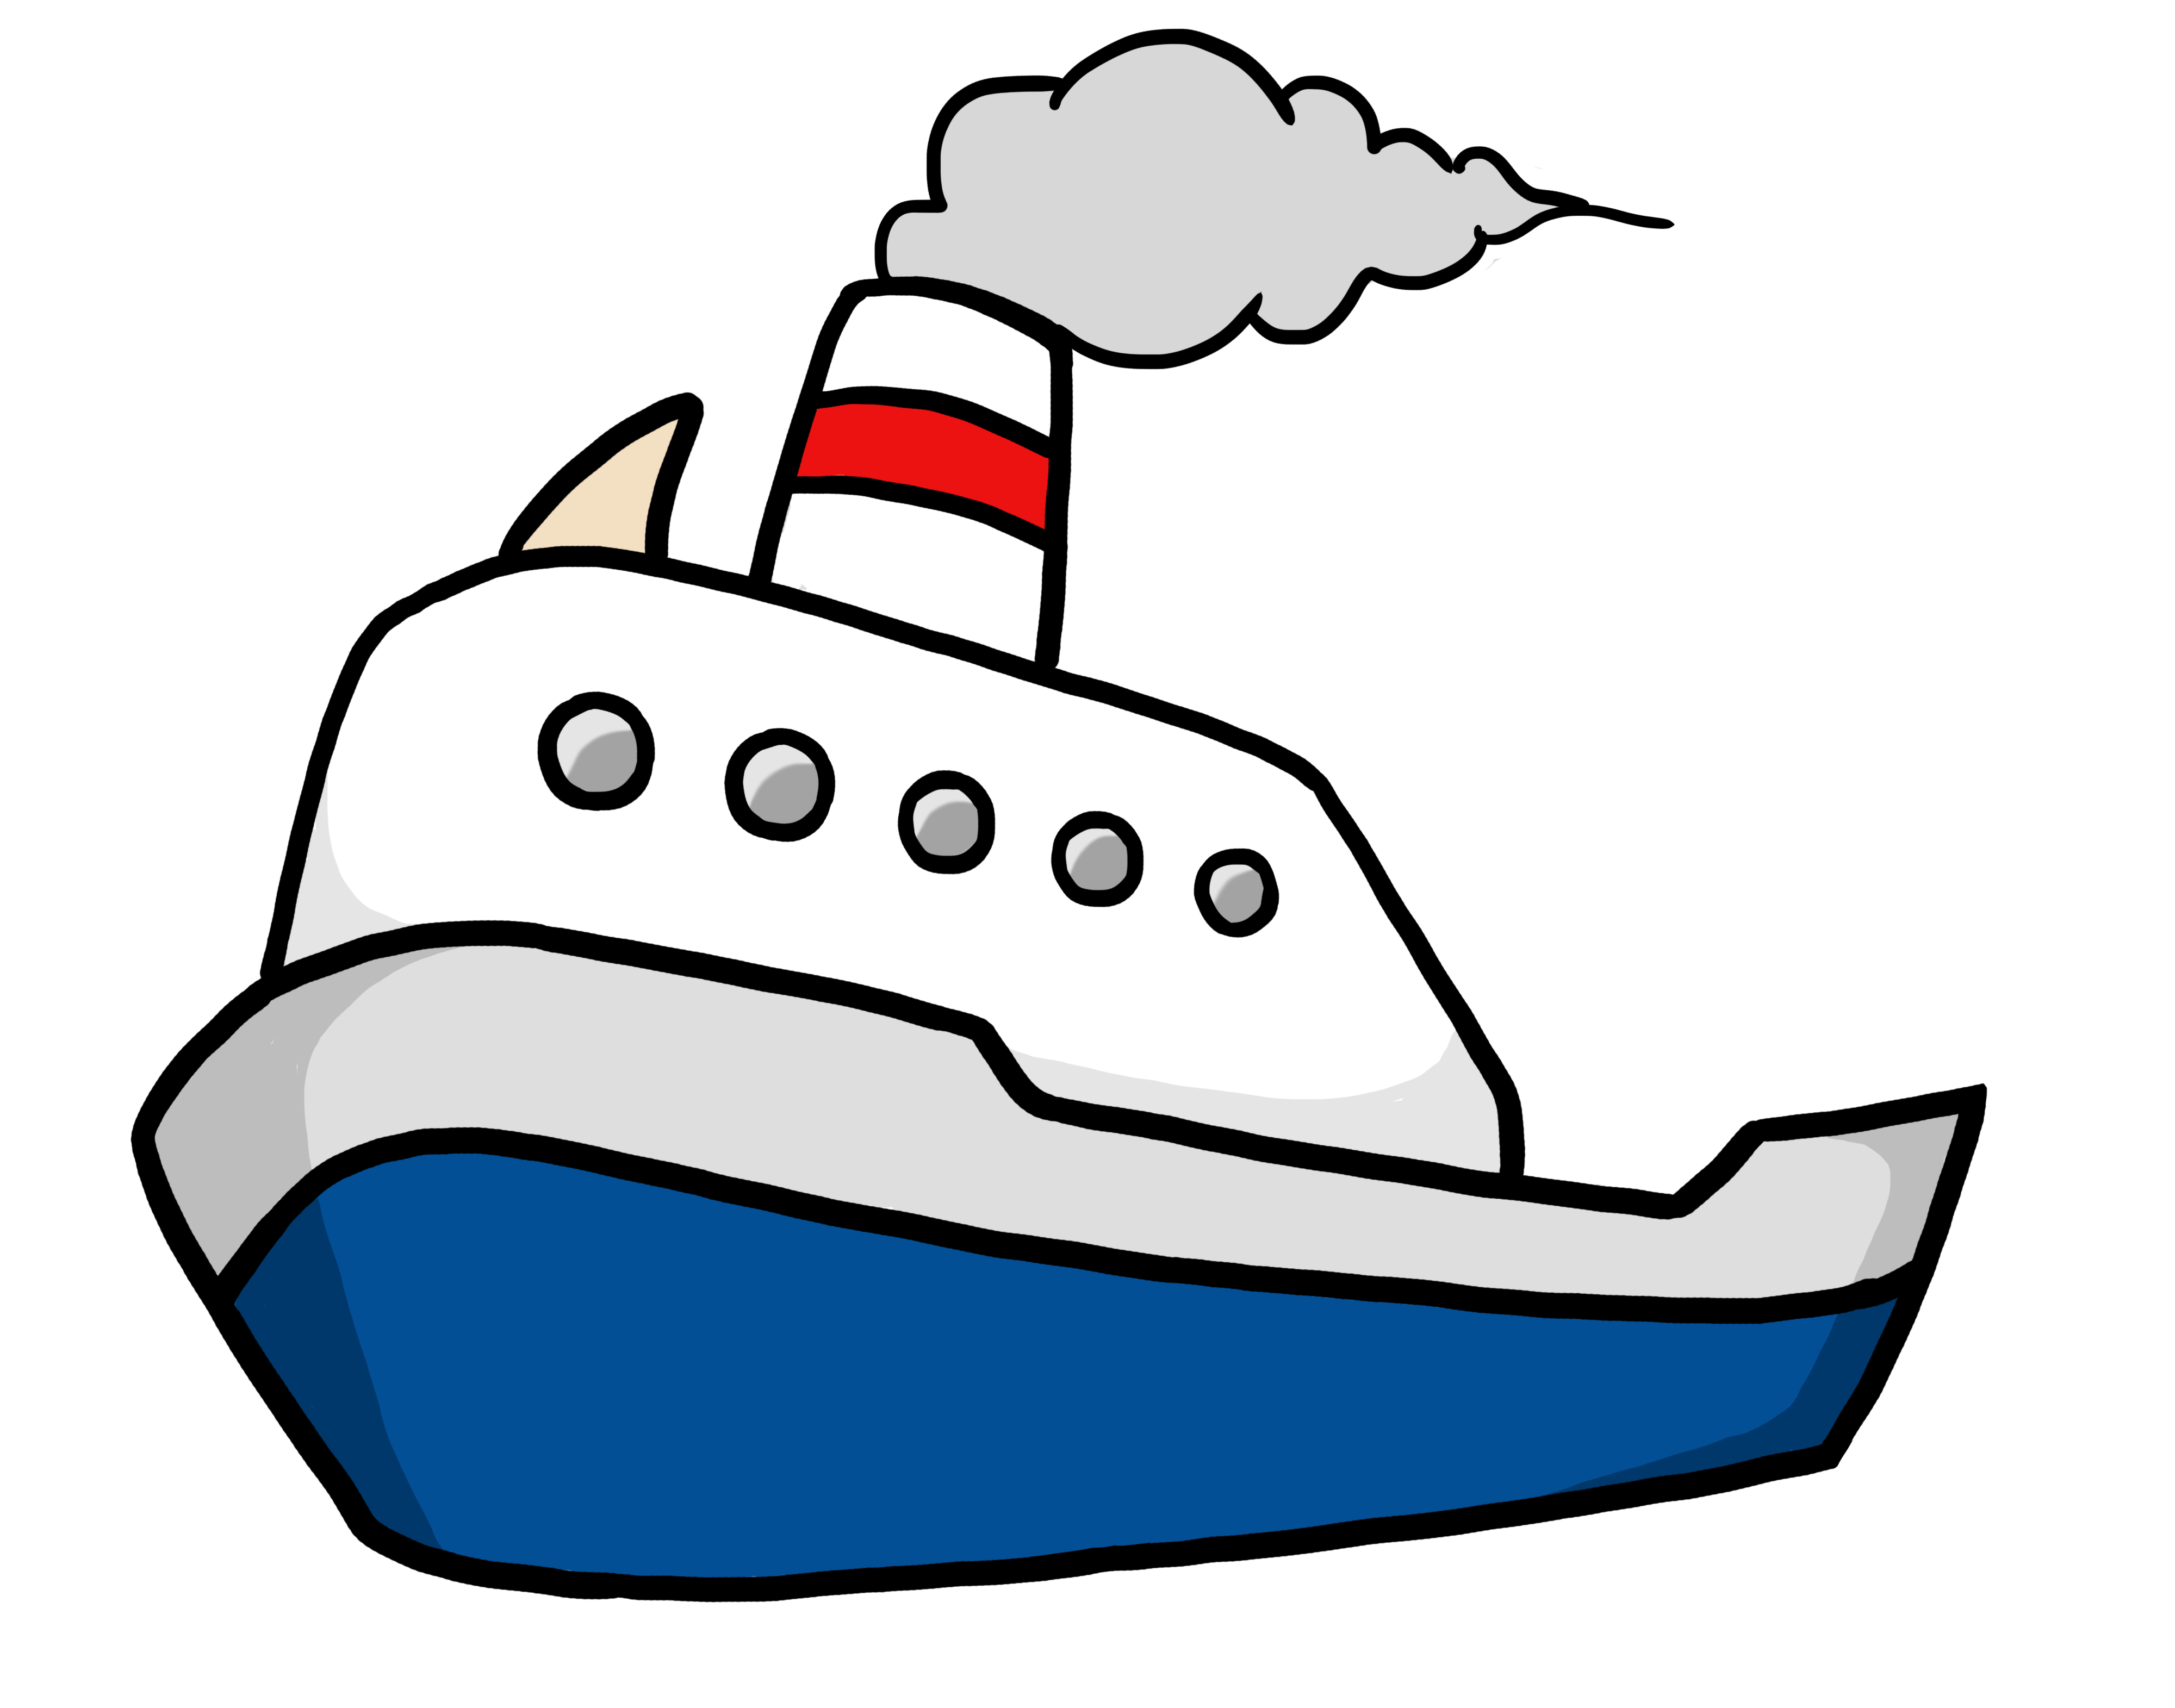 river boat clipart - photo #1